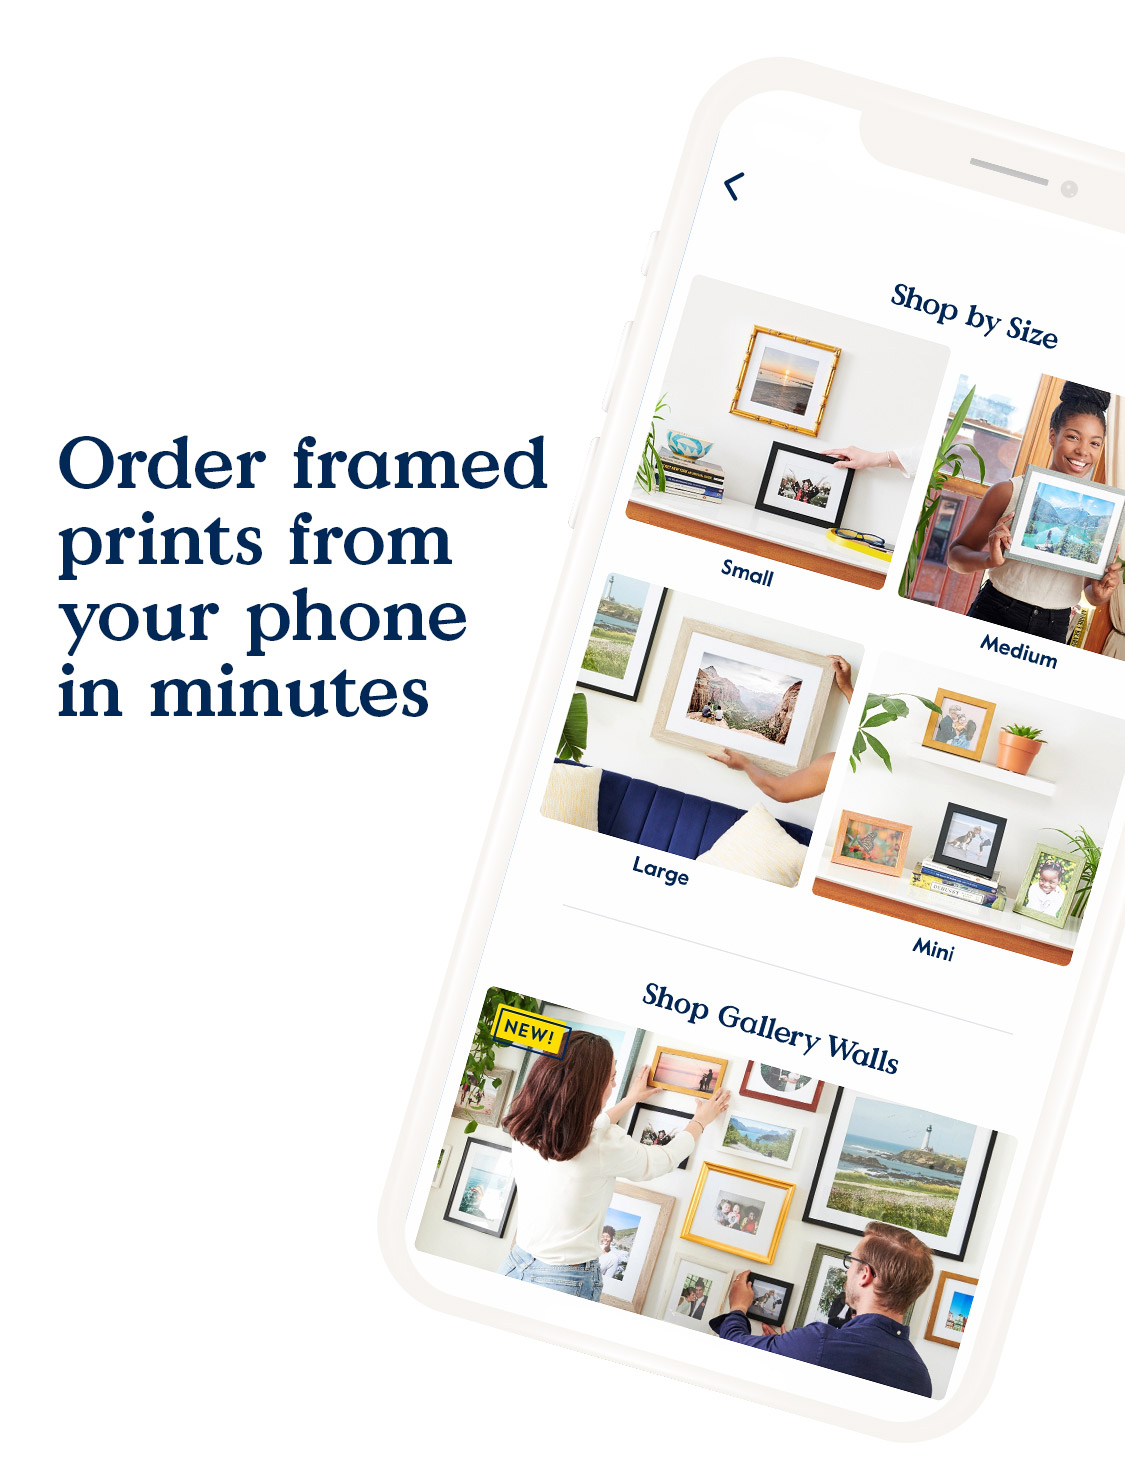 Order framed prints from your phone in minutes